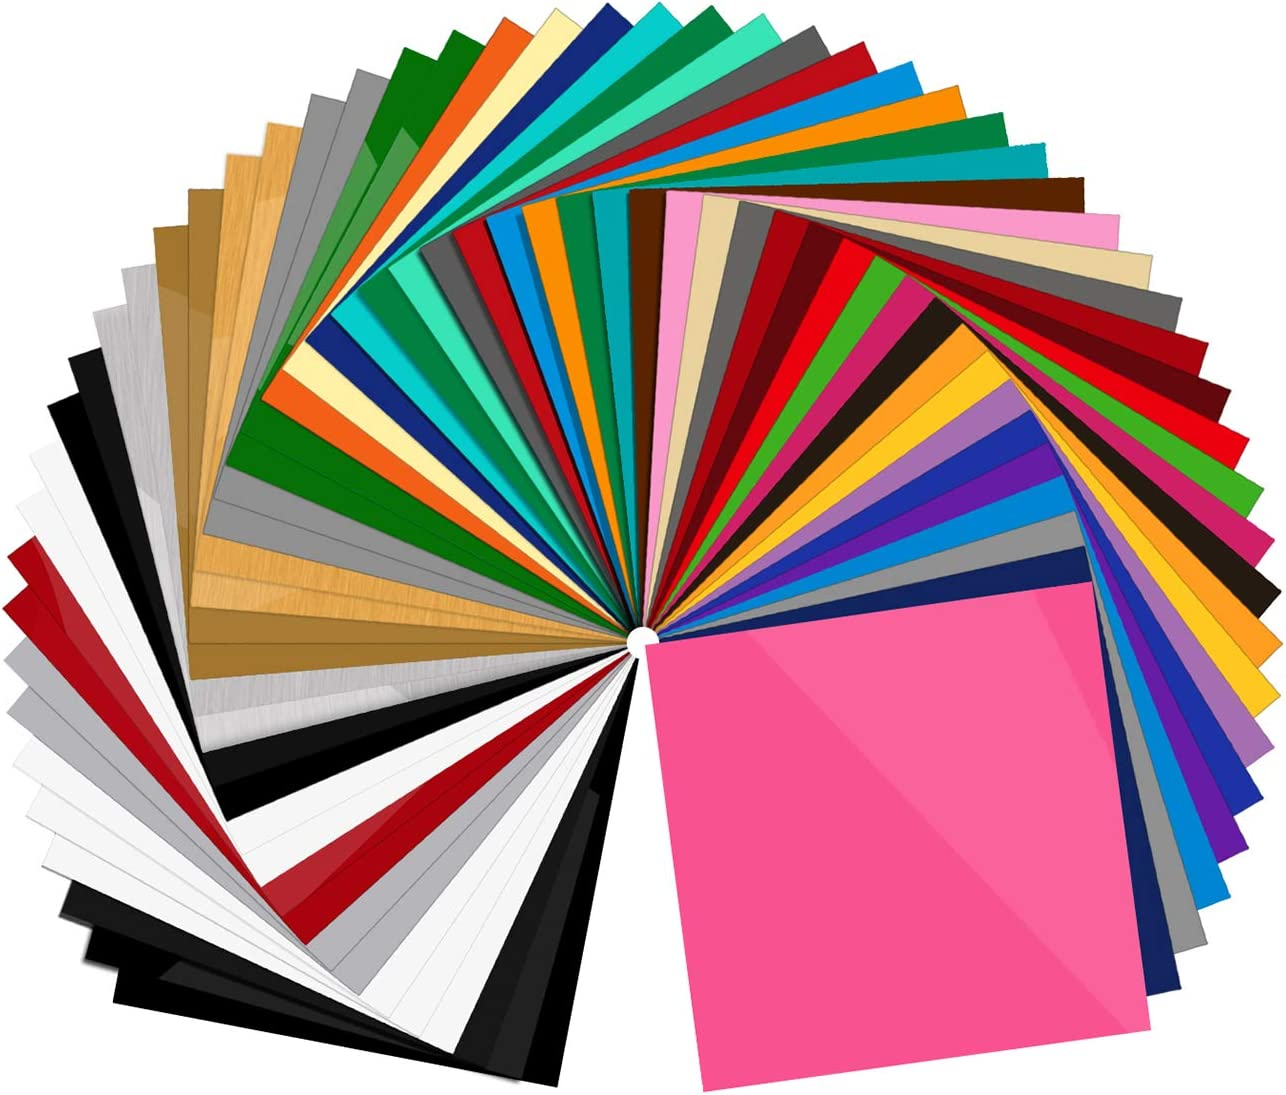 "55 Pack Premium Permanent Self Adhesive Vinyl Sheets-Assorted Colors (Glossy, Matte, Brushed) for Other Cutters & Decals 12""x12"""